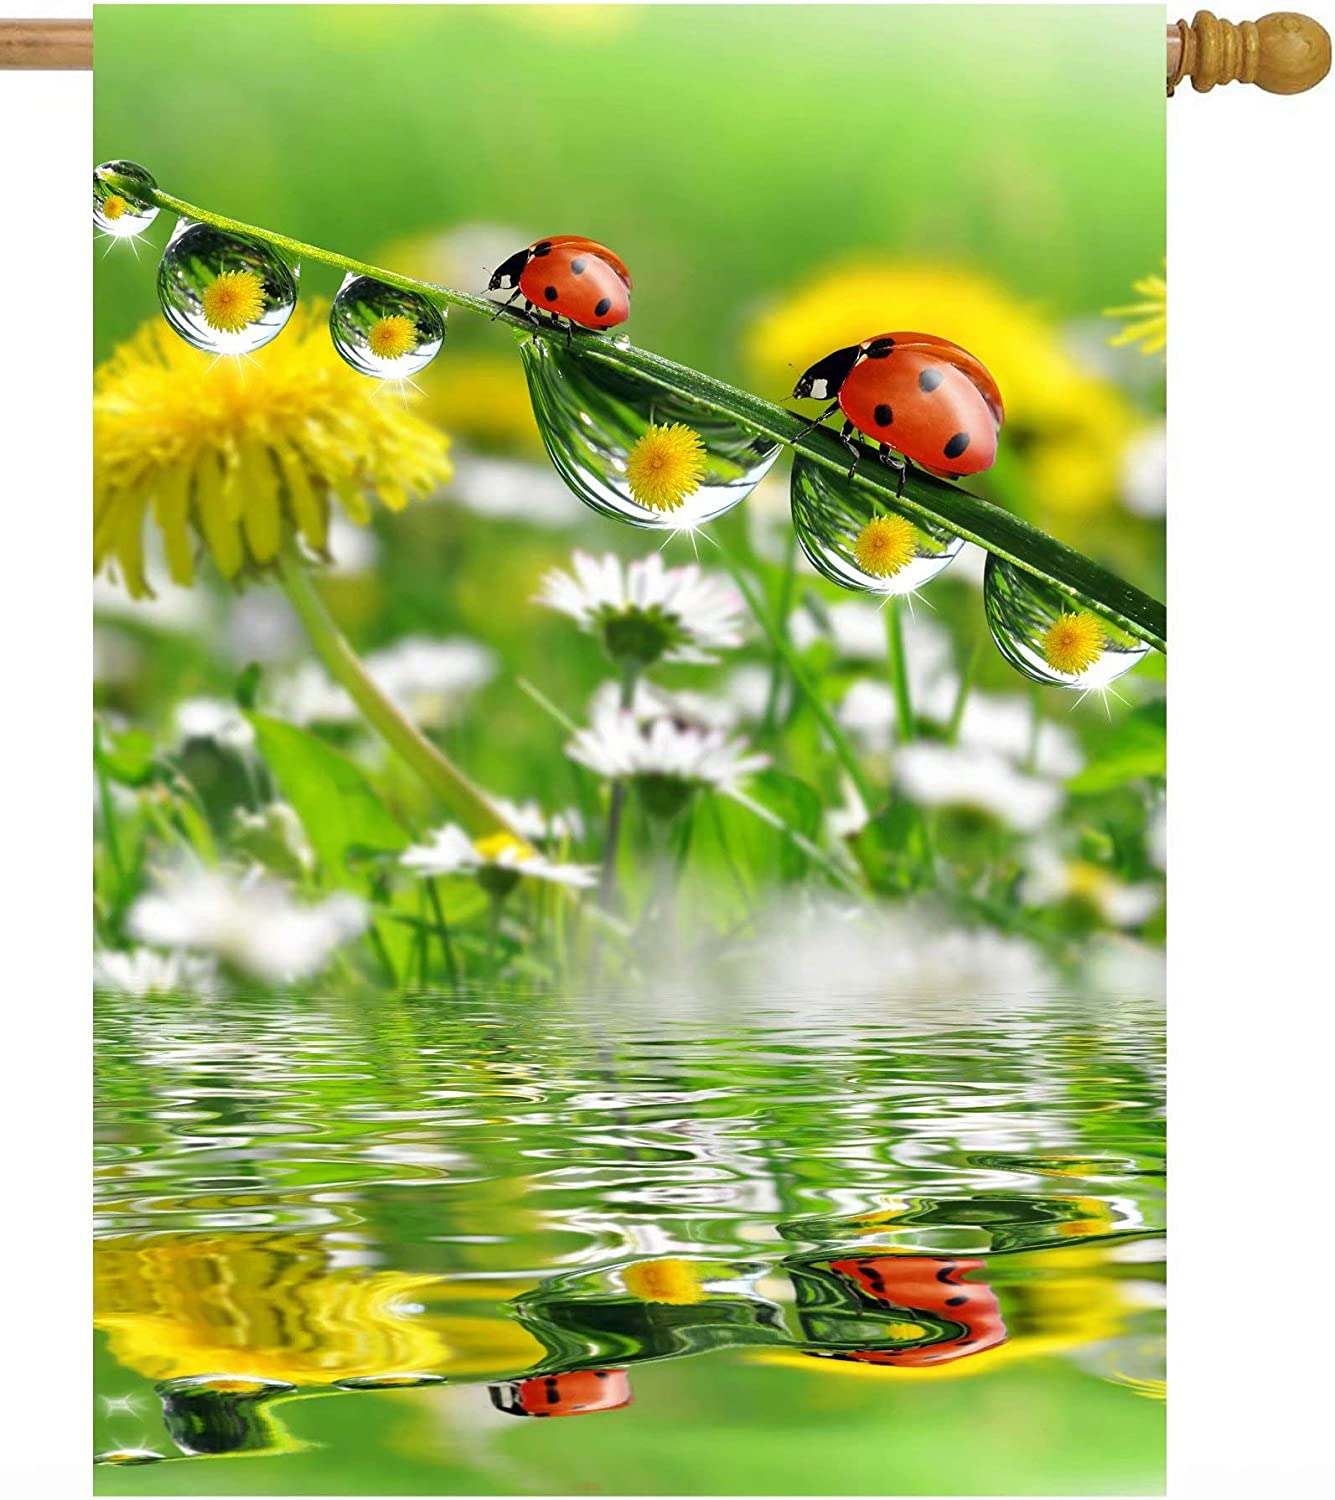 Pickako Ladybugs Insects Dew Drops in Dandelion Flowers Lake Spring Summer Seasonal House Flag 28 x 40 Inch, Double Sided Large Garden Yard Welcome Flags Banners for Home Lawn Patio Outdoor Decor